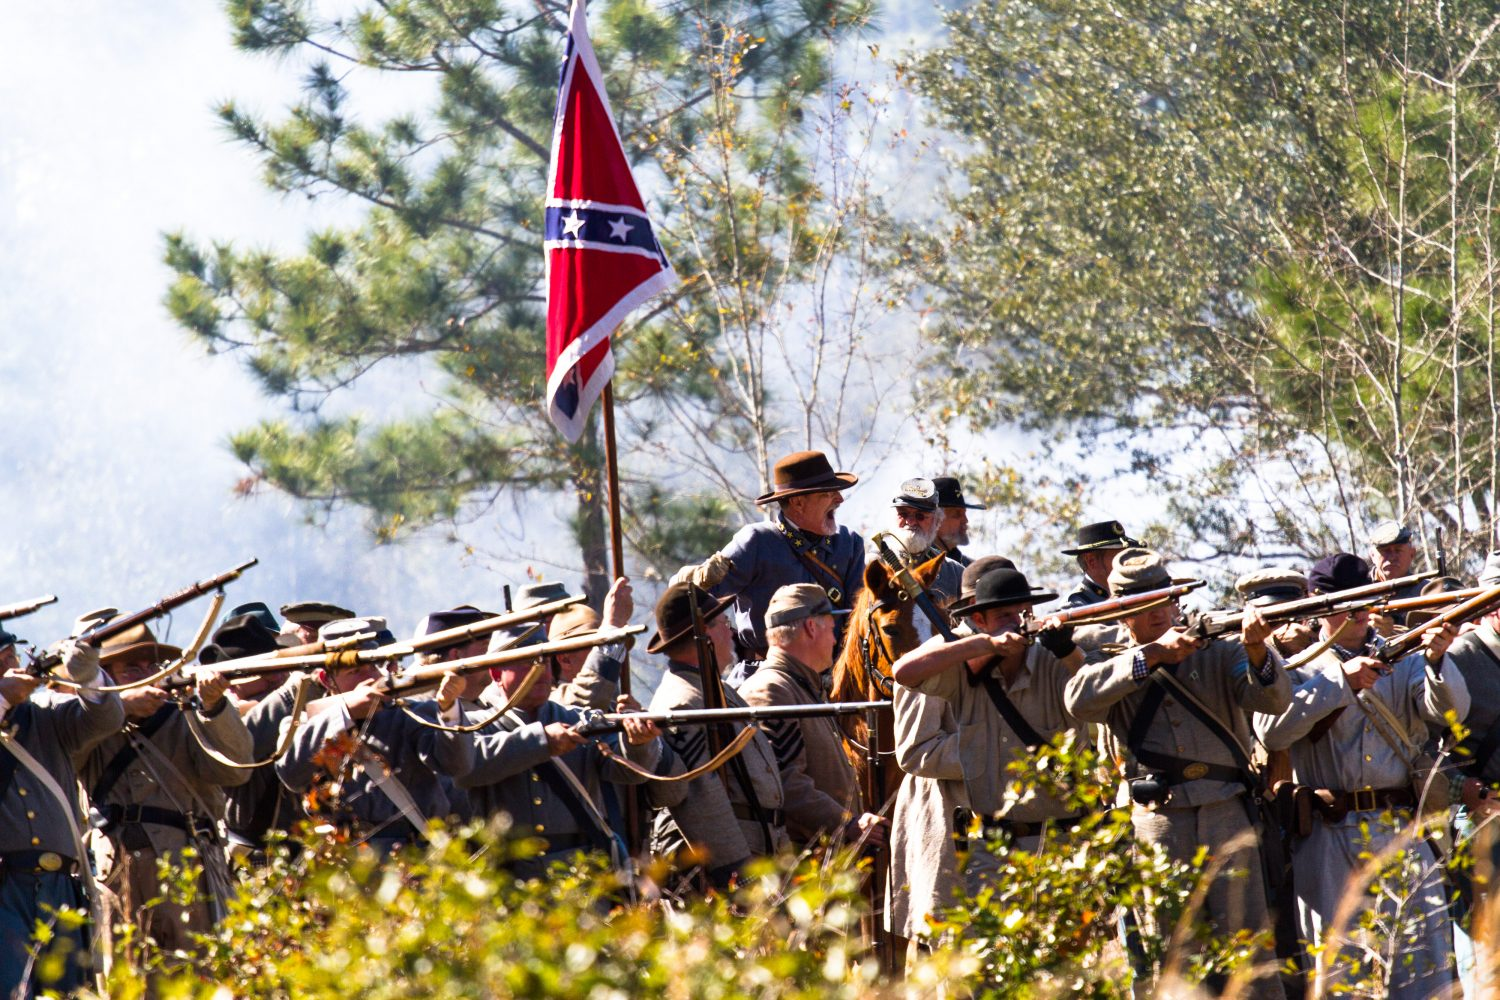 GALLERY: Thousands Gather for 150th Anniversary of Civil War